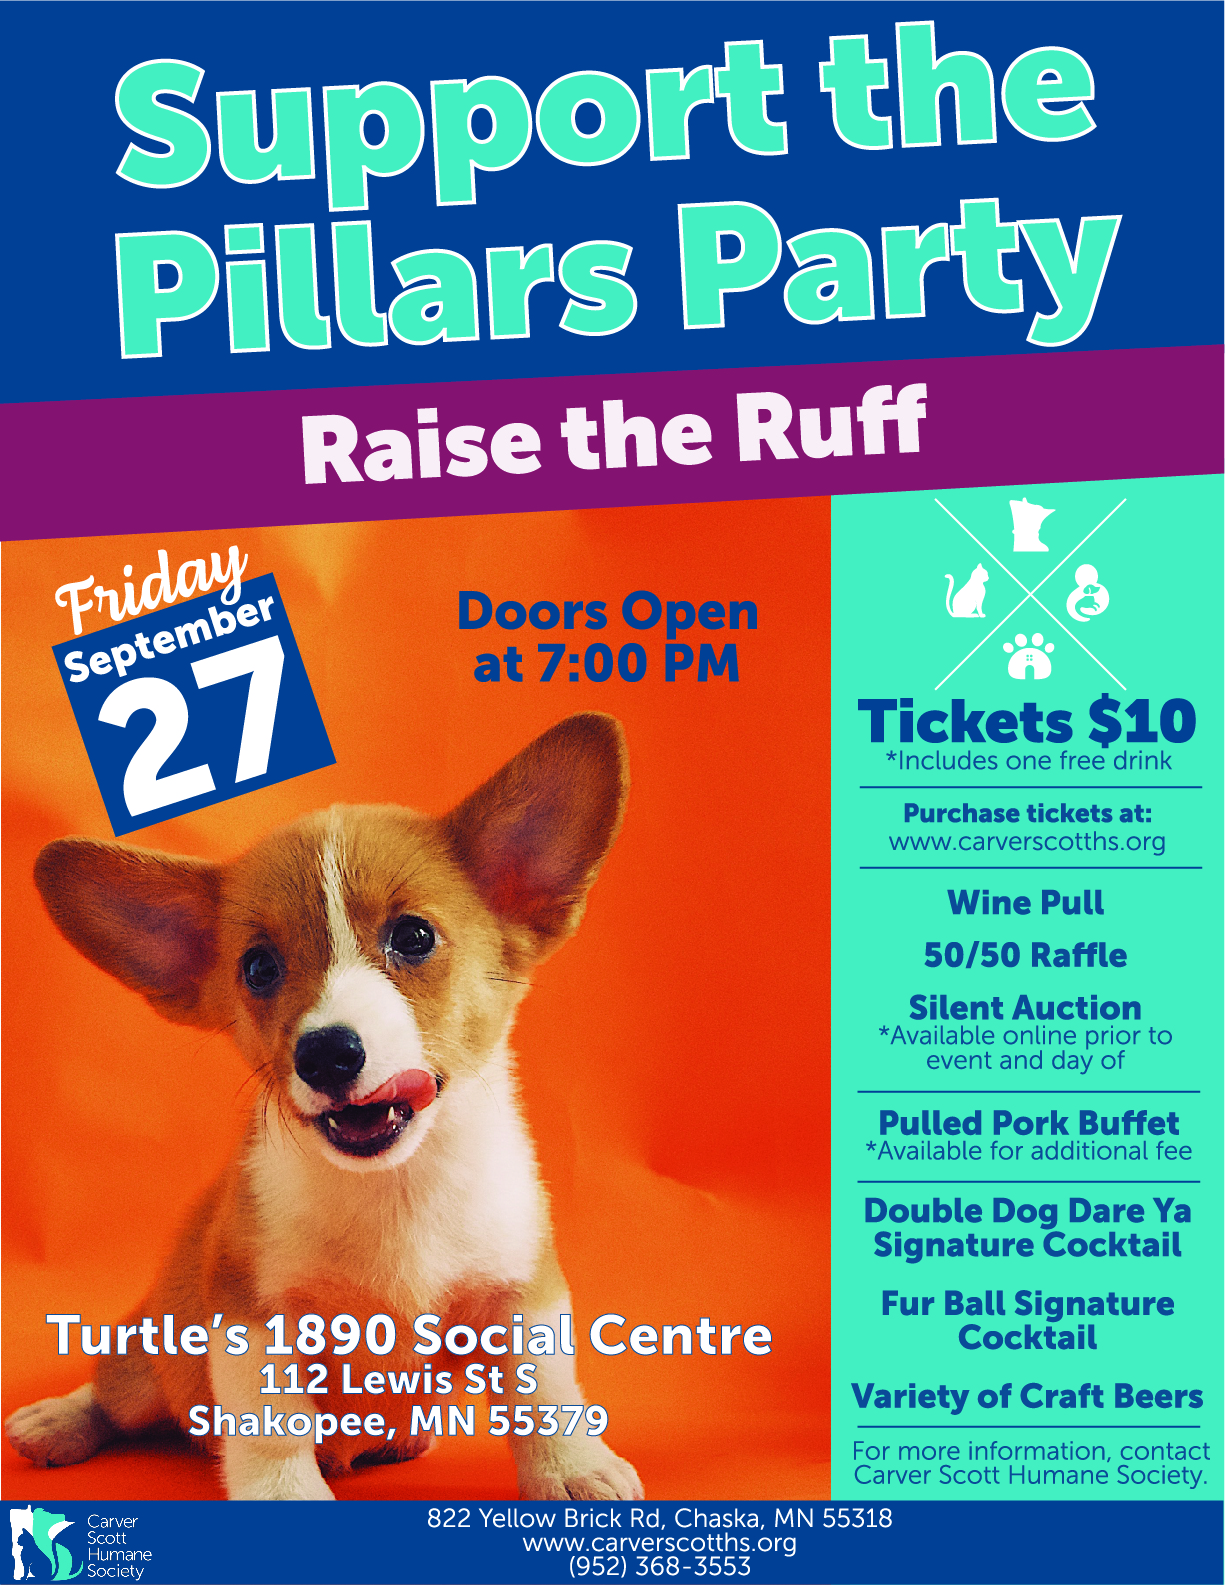 Support the Pillars Party